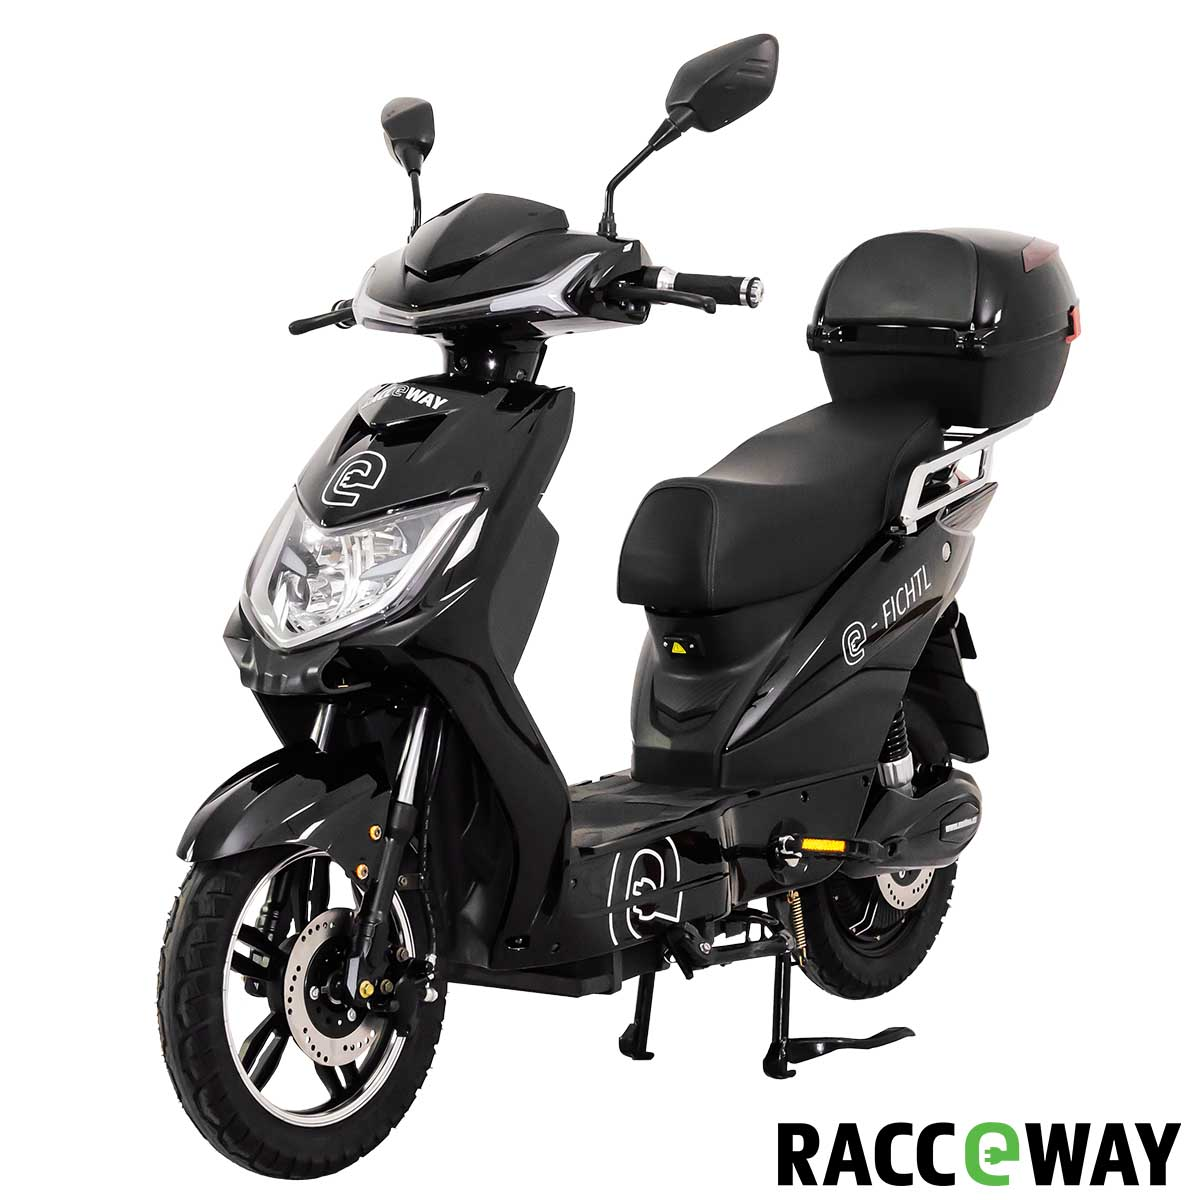 https://www.motoe.cz/inshop/catalogue/products/pictures/motoe-1f-02_a3.jpg?timestamp=20211028110337